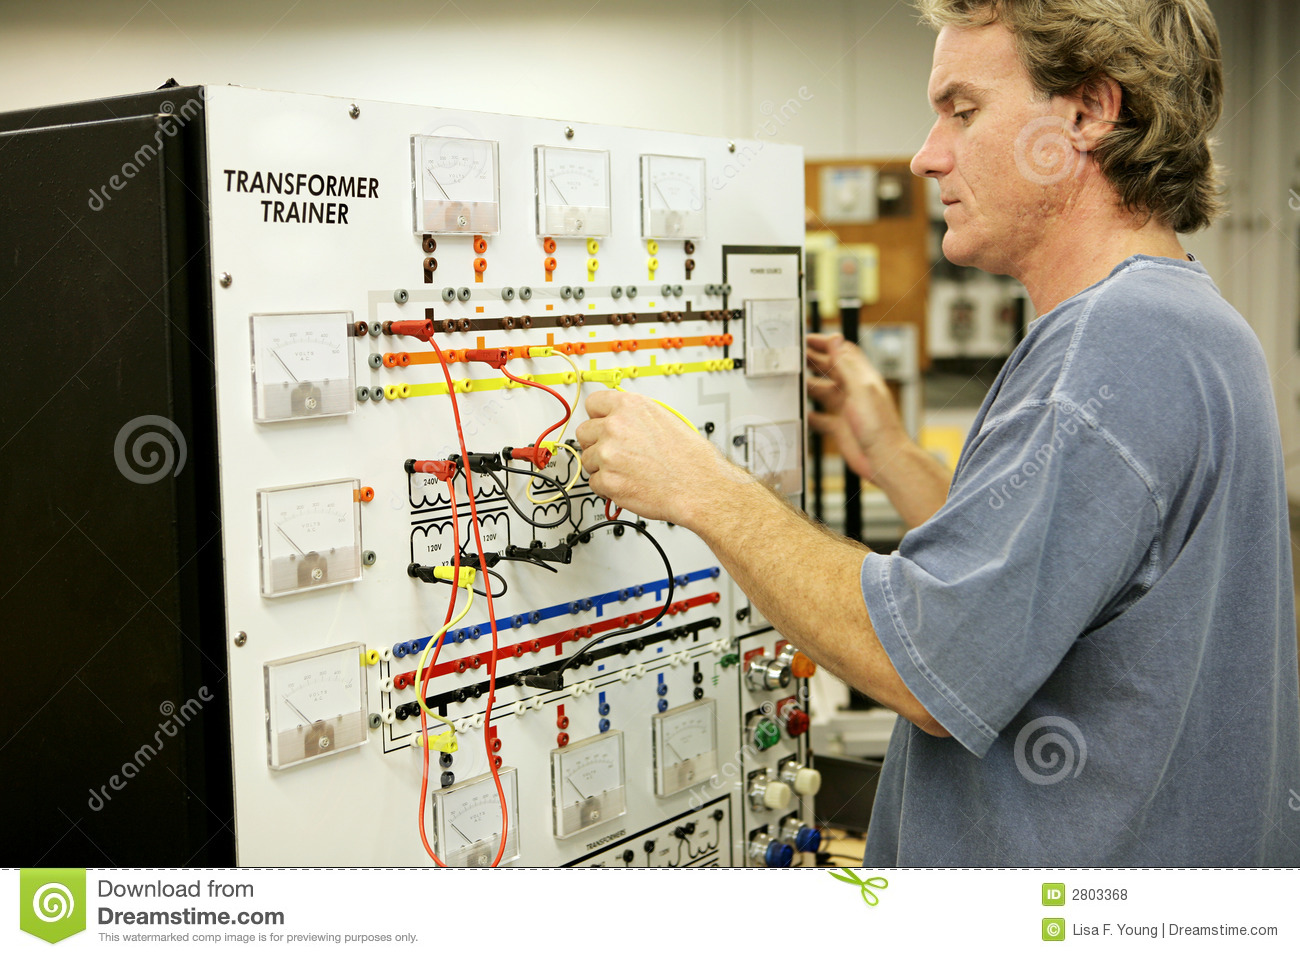 Transformer Wiring Board Trainer Excellent Electrical Isolation Free Download Diagrams Pictures Electronics Training Royalty Stock Photos Image 2803368 Up A